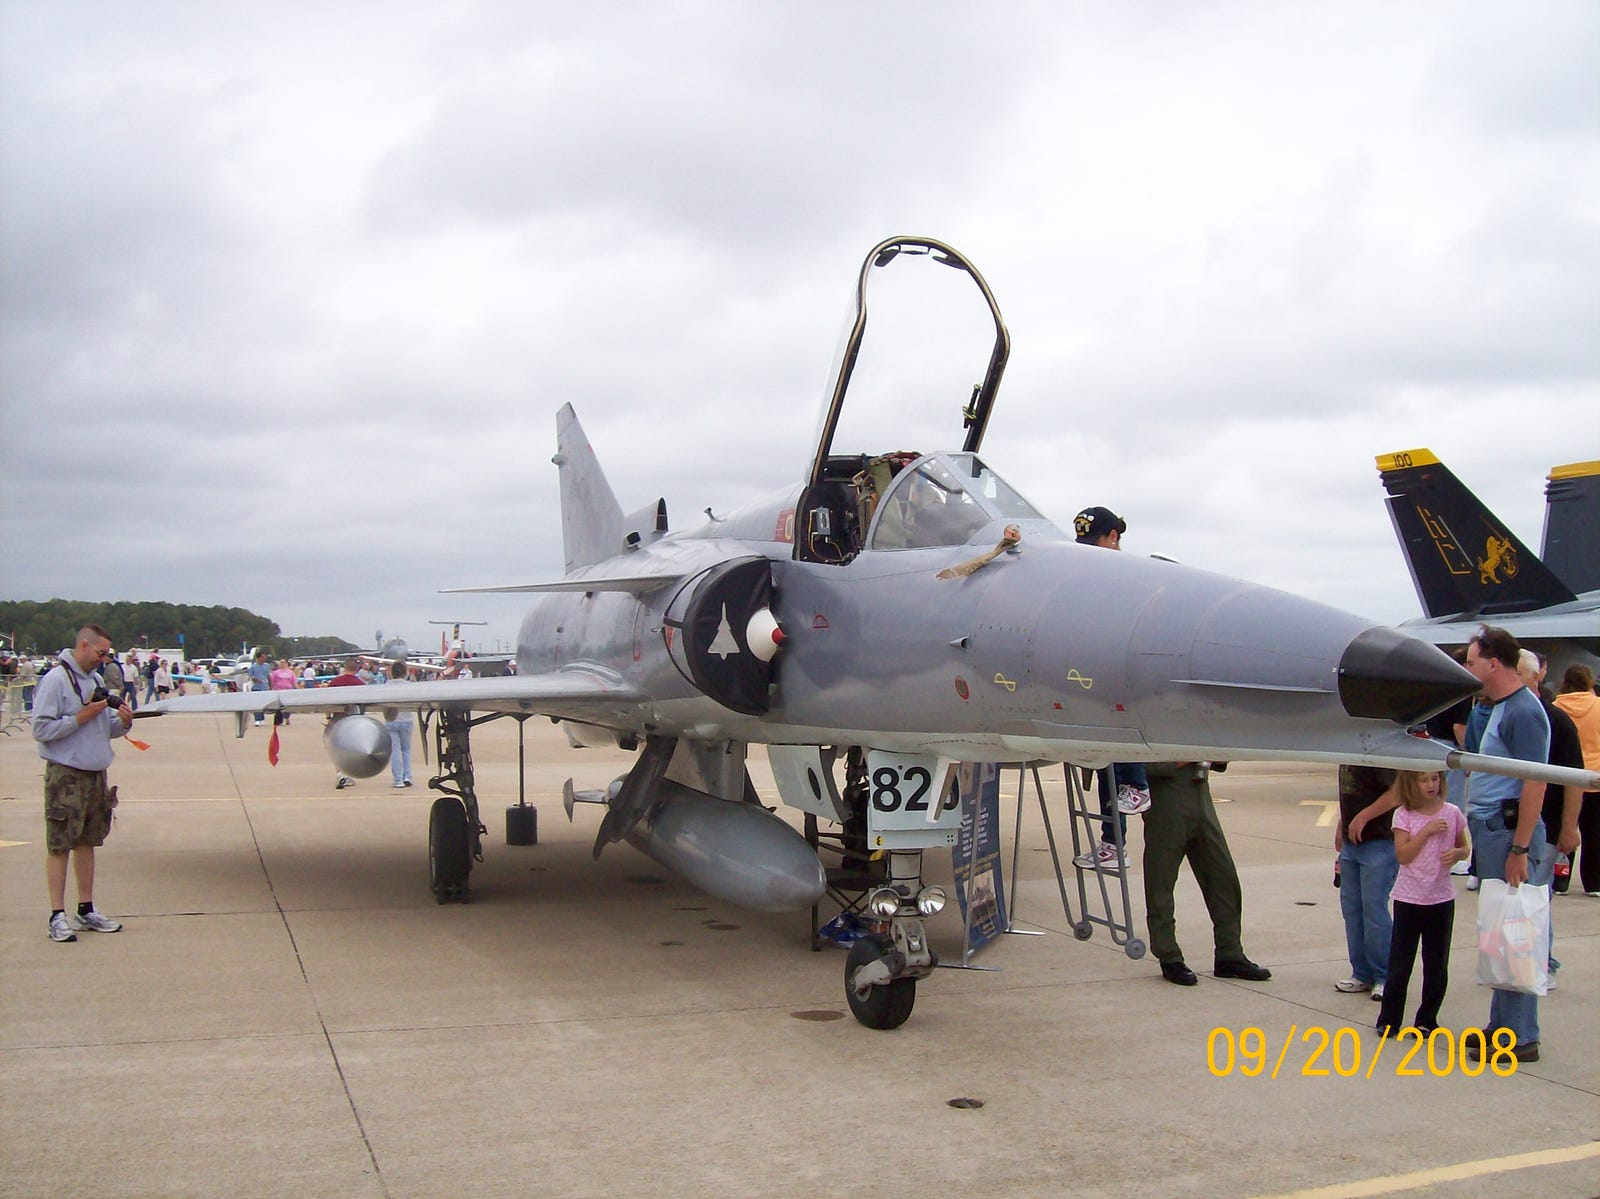 """An IAI Kfir (""""Lion Cub"""") was developed in Israel based on the Dassault Mirage 5 and is powered by a GE J79 engine, which also powered F-4 Phantoms."""